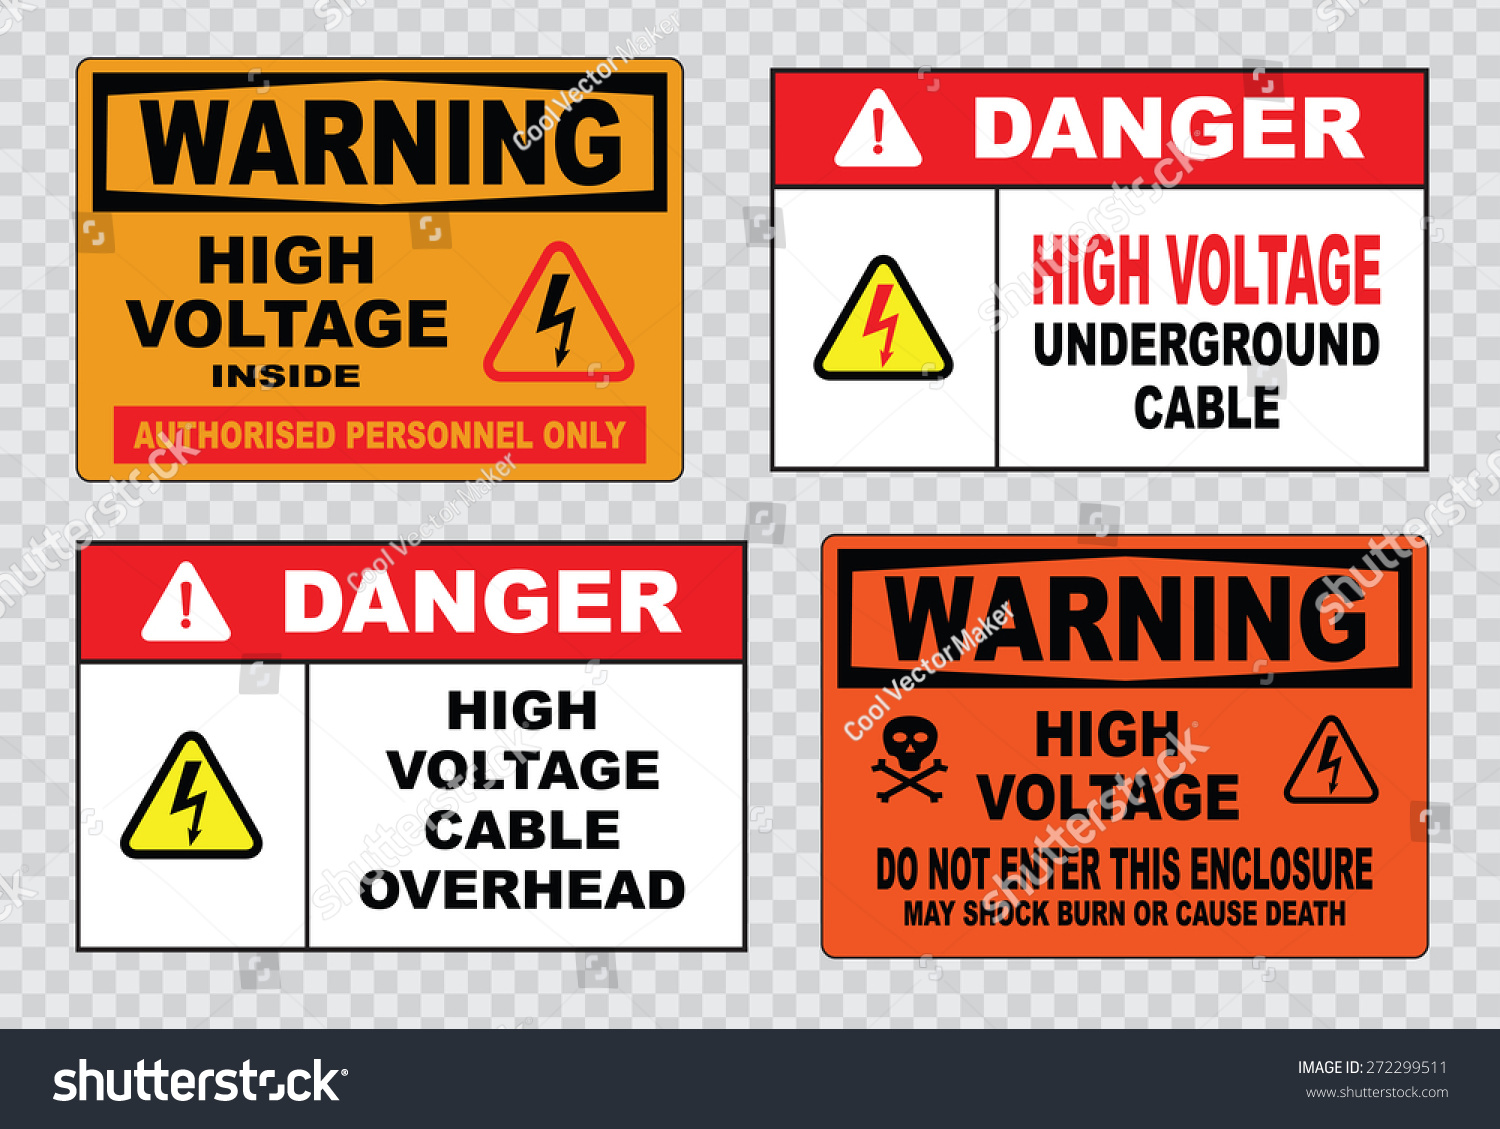 Royalty free high voltage sign or electrical safety 272299511 high voltage sign or electrical safety sign high voltage inside authorized personnel only underground buycottarizona Images